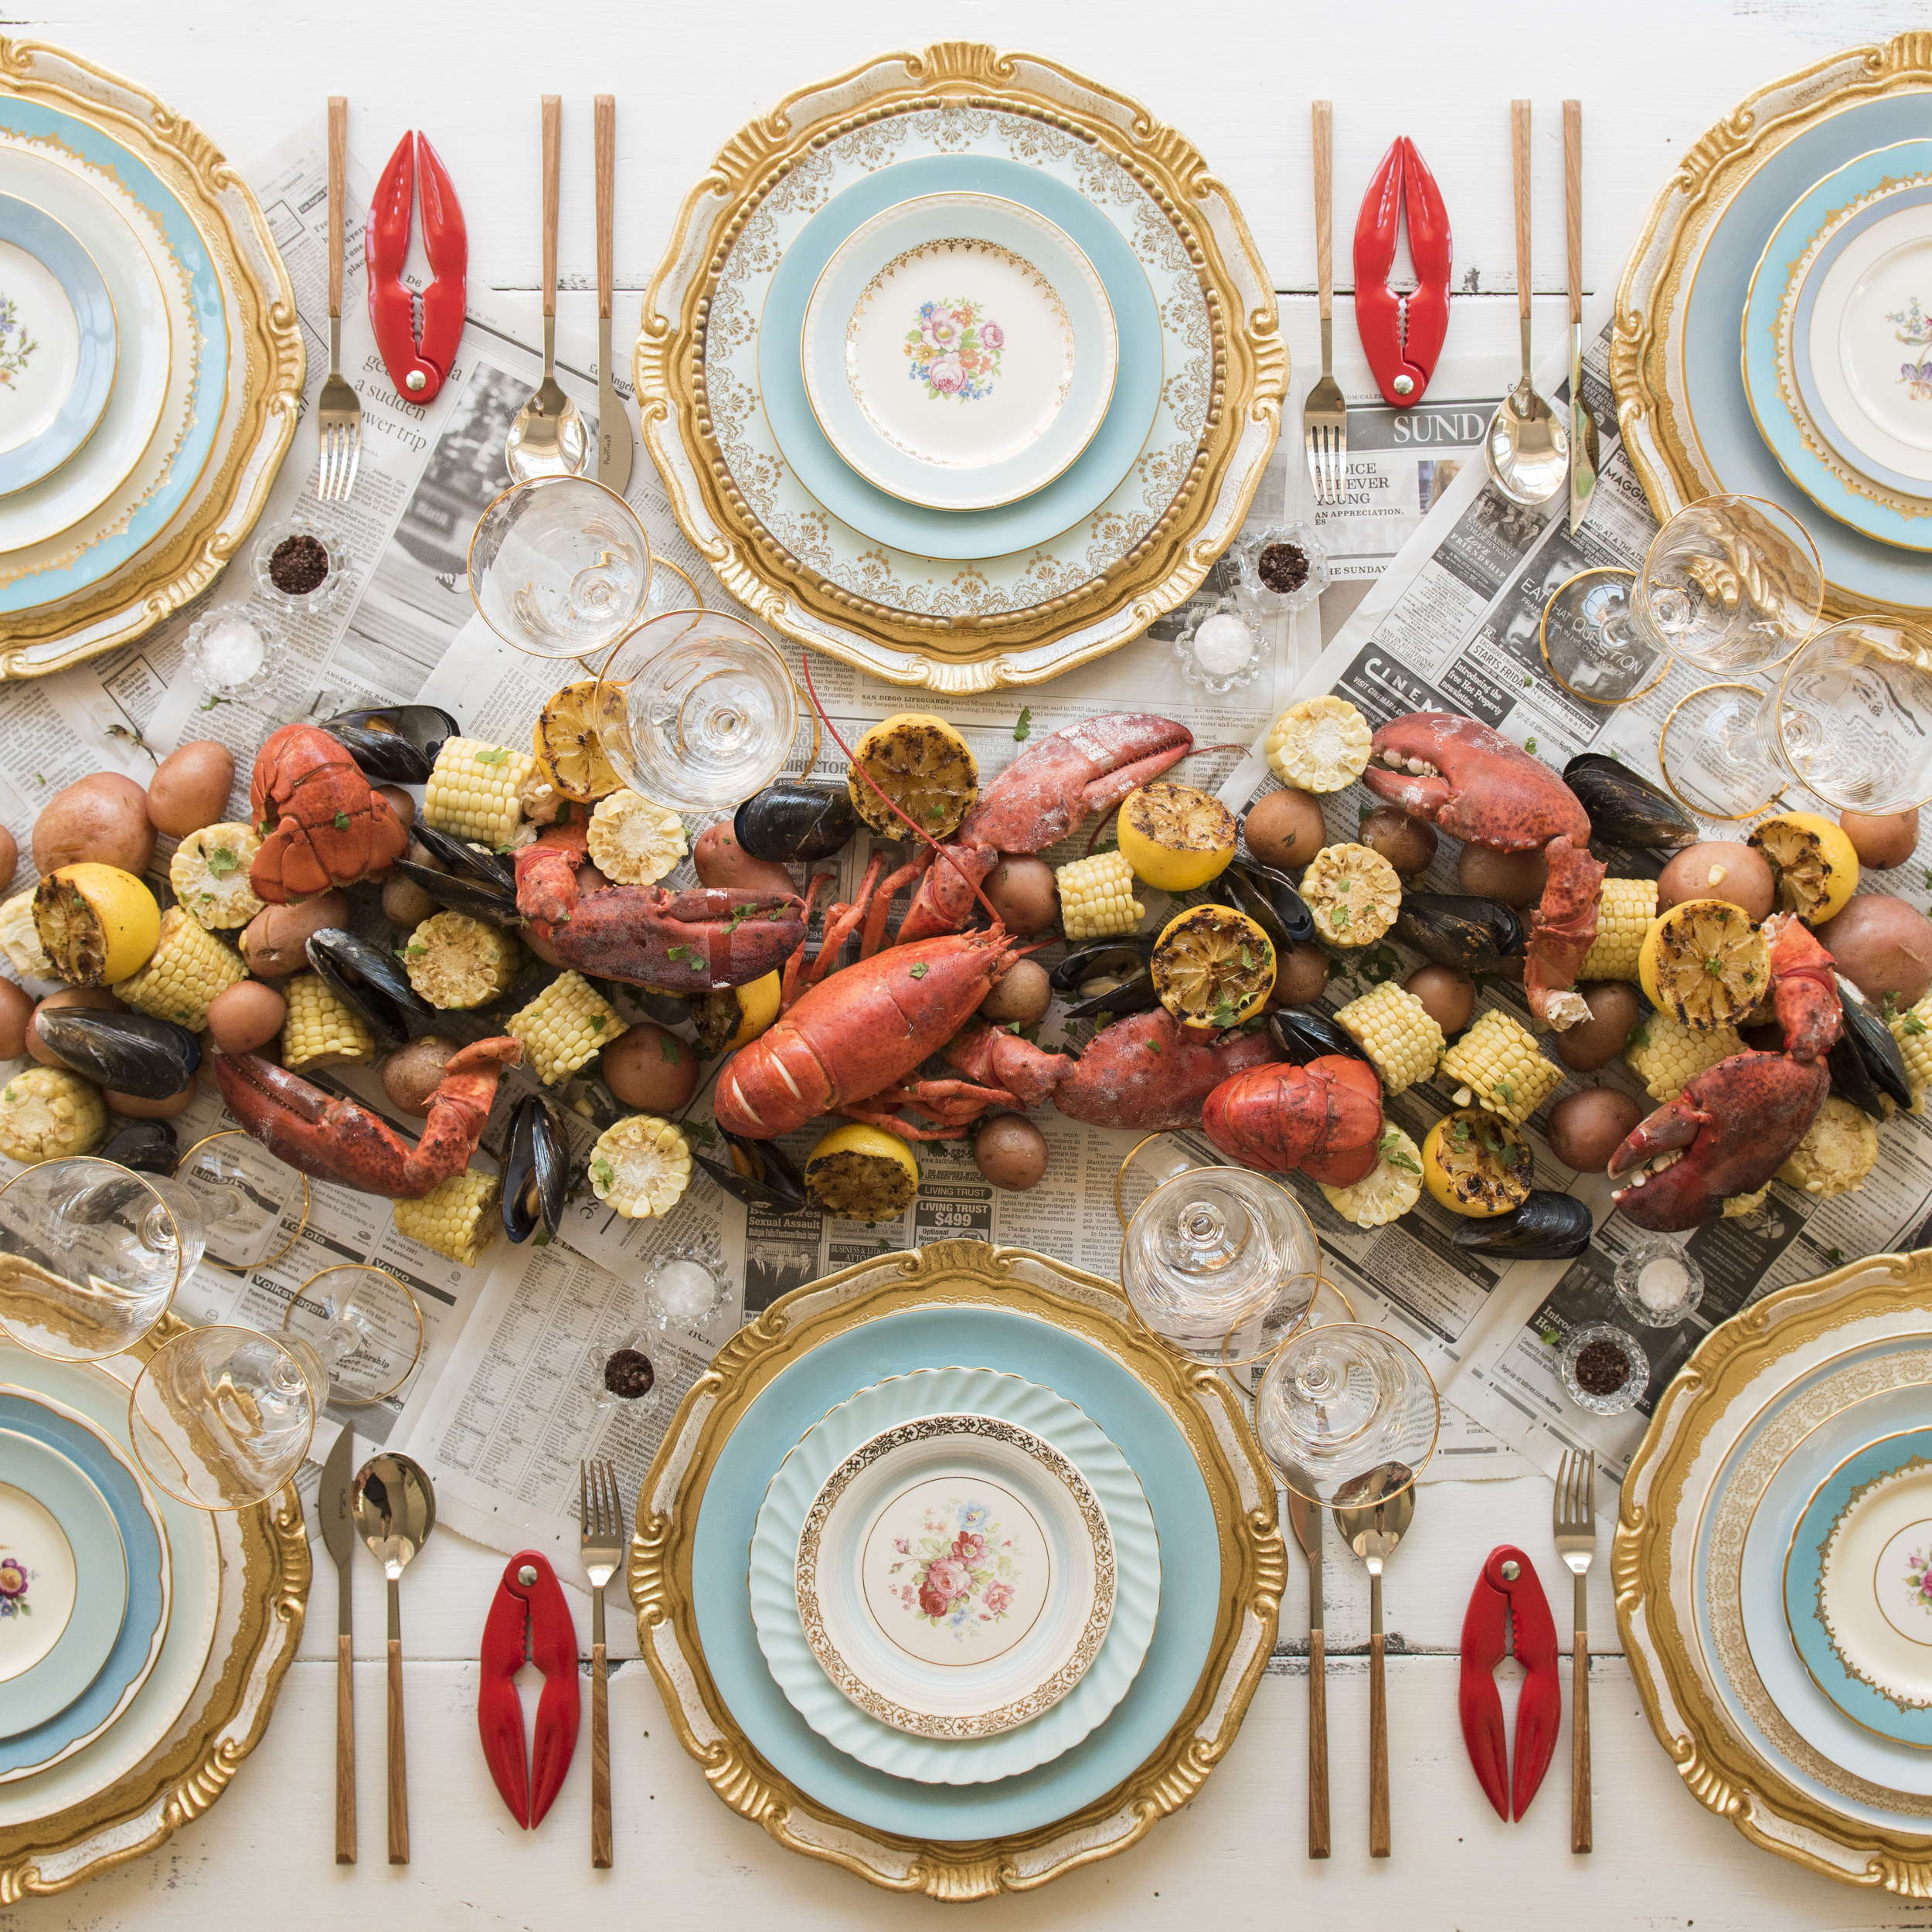 RENT: Florentine Chargers in White/Gold + Blue Botanicals Vintage China + Danish Flatware in Teak + Chloe 24k Gold Rimmed Stemware + Antique Crystal Salt Cellars   SHOP: Florentine Chargers in White/Gold + Chloe 24k Gold Rimmed Stemware